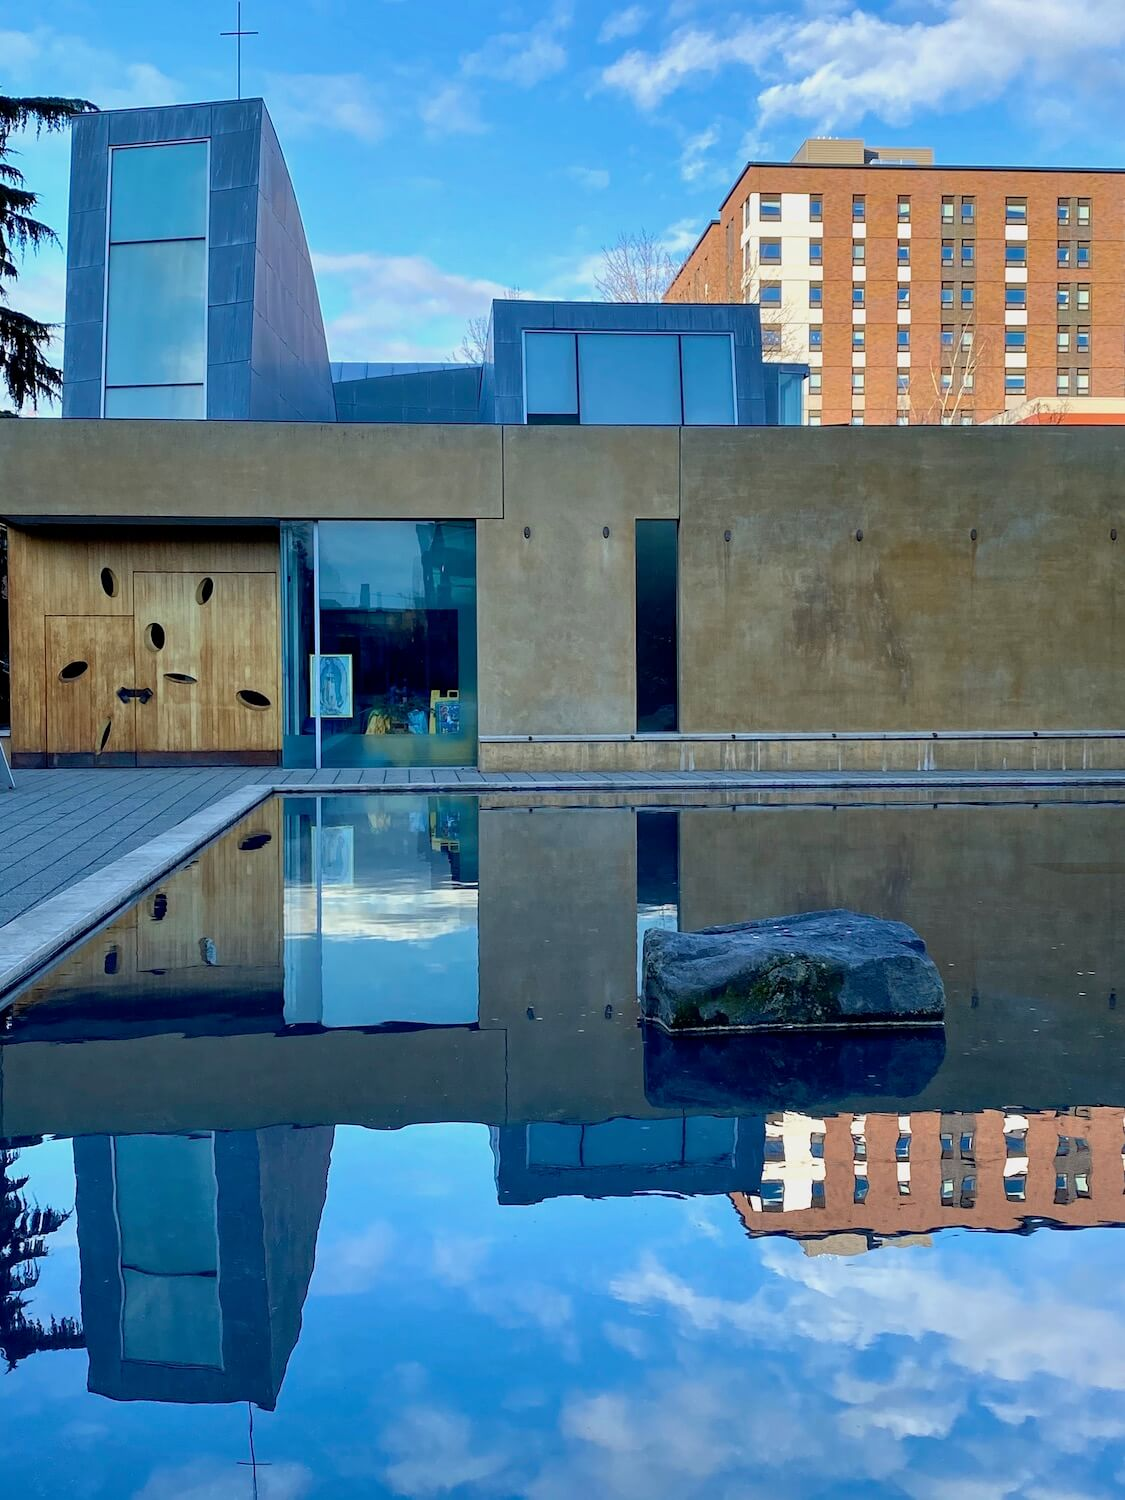 The Chapel of St. Ignatius on the campus of Seattle University offers a unique architecture with a variety of geometrical shapes towering over a rectangular reflection pool.